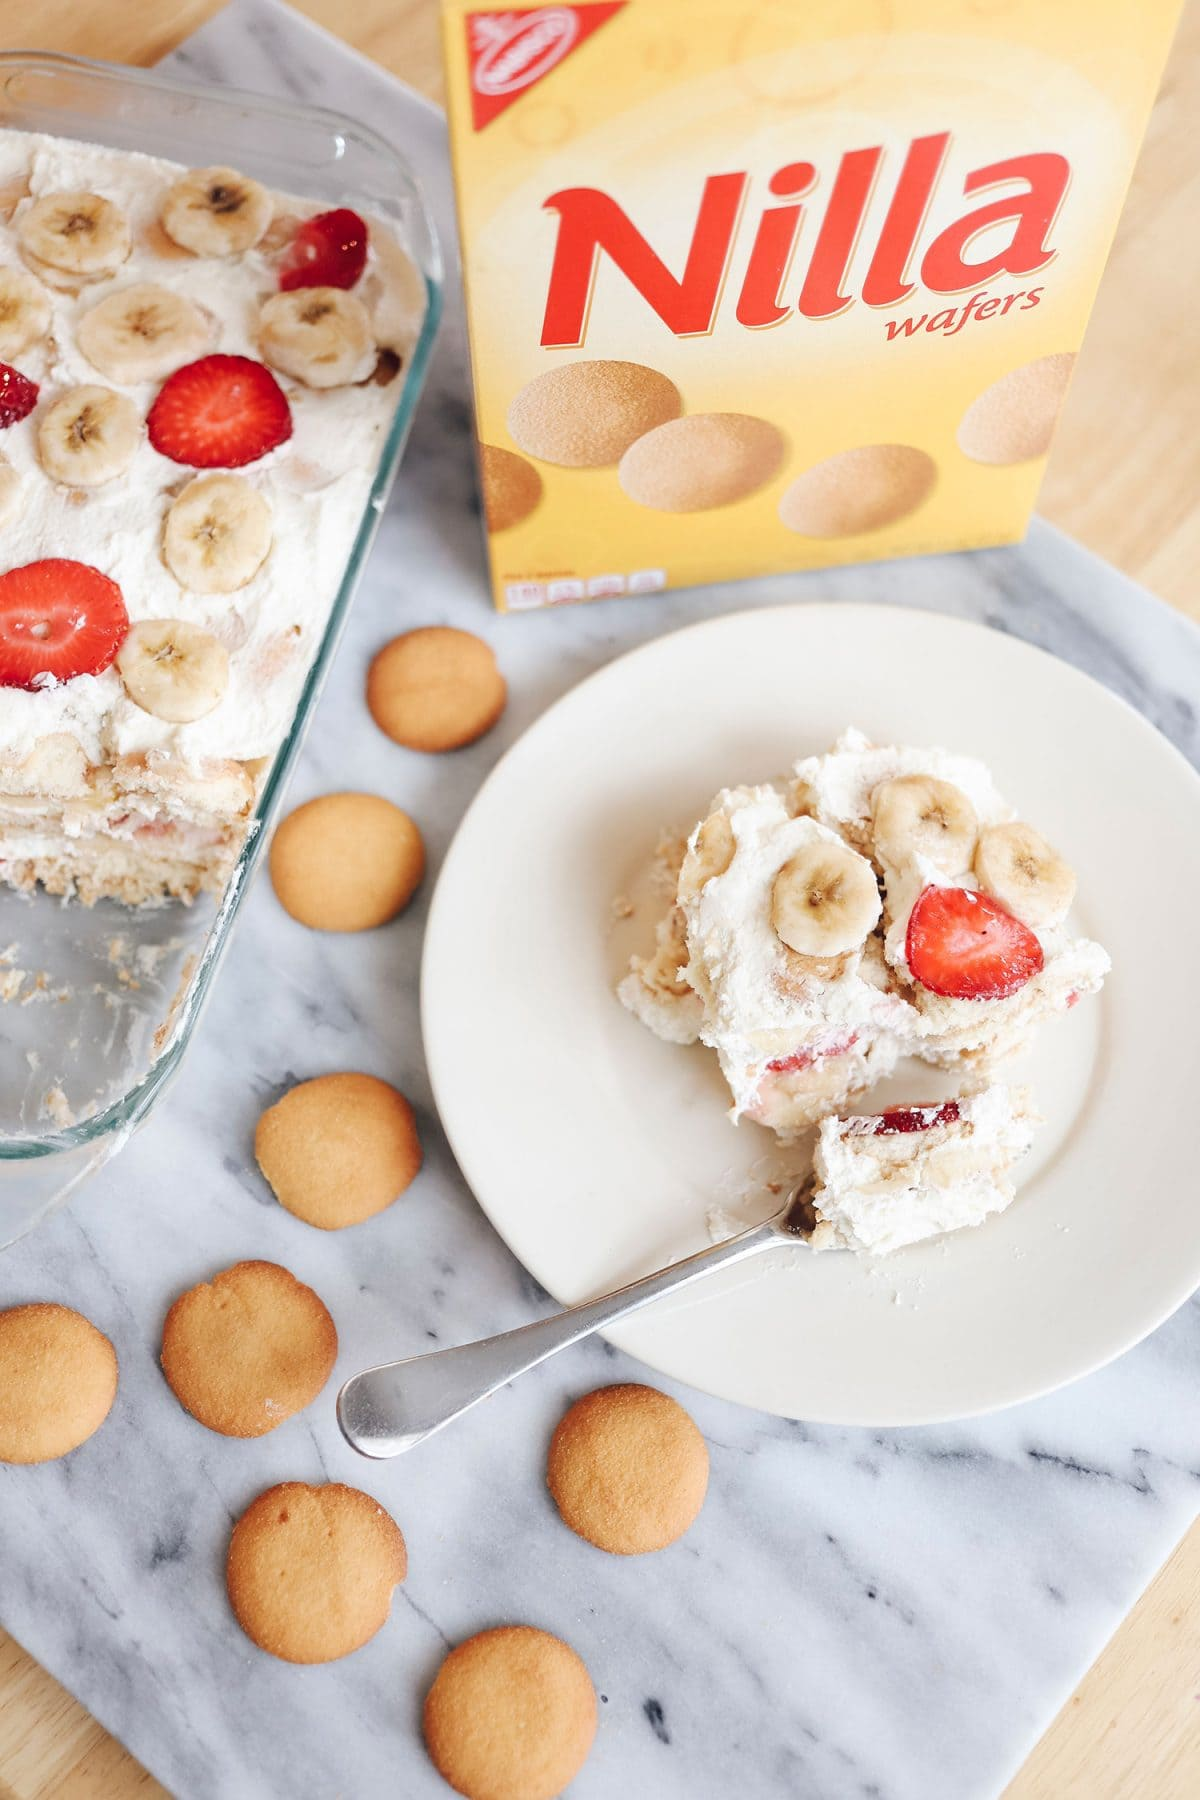 Nilla wafers strawberry icebox cake - super easy no-bake recipe that the whole family will love